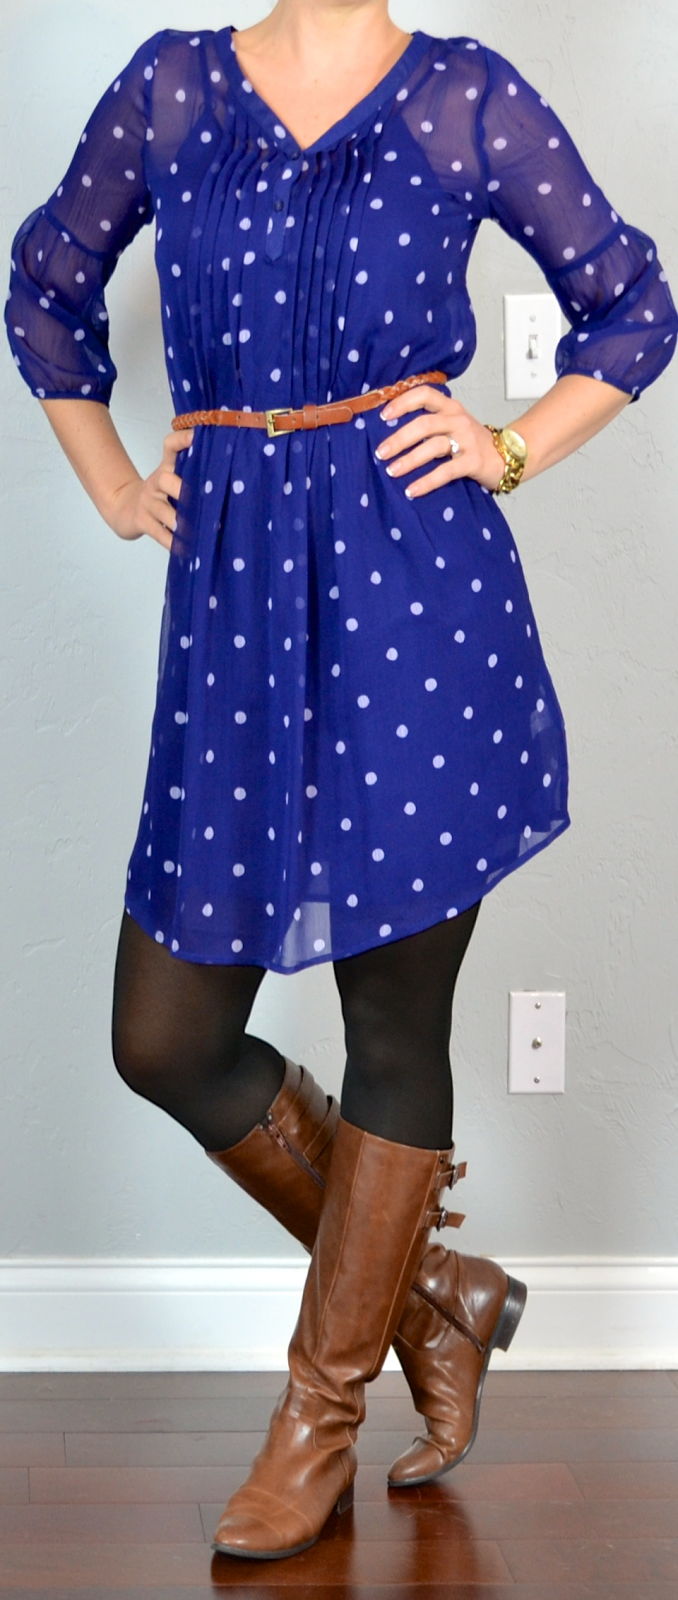 Try denim blue Mary Janes with a tan-and-brown dress, and you can never go wrong with red heels and a black-and-white dress. Personal Style Your personal style is the most important thing to consider when buying shoes to wear with a polka dot dress.